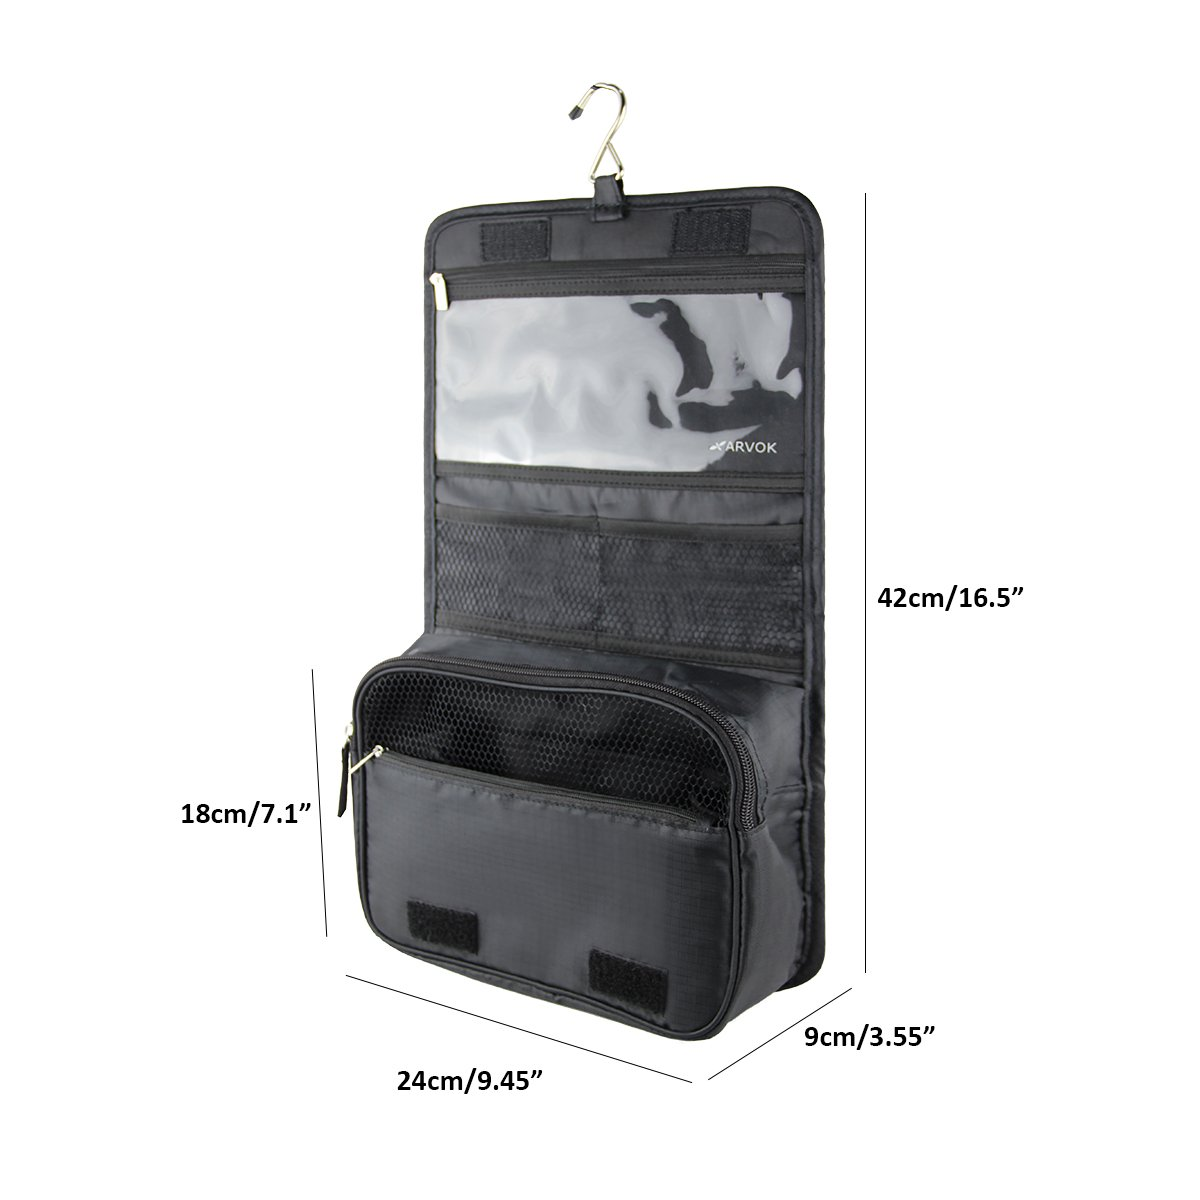 b80d0753c7 Buy arvok hanging toiletry bag with metal hook portable travel makeup  shower bath kits storage organizer cosmetic pouch case for women and men  outdoor ...